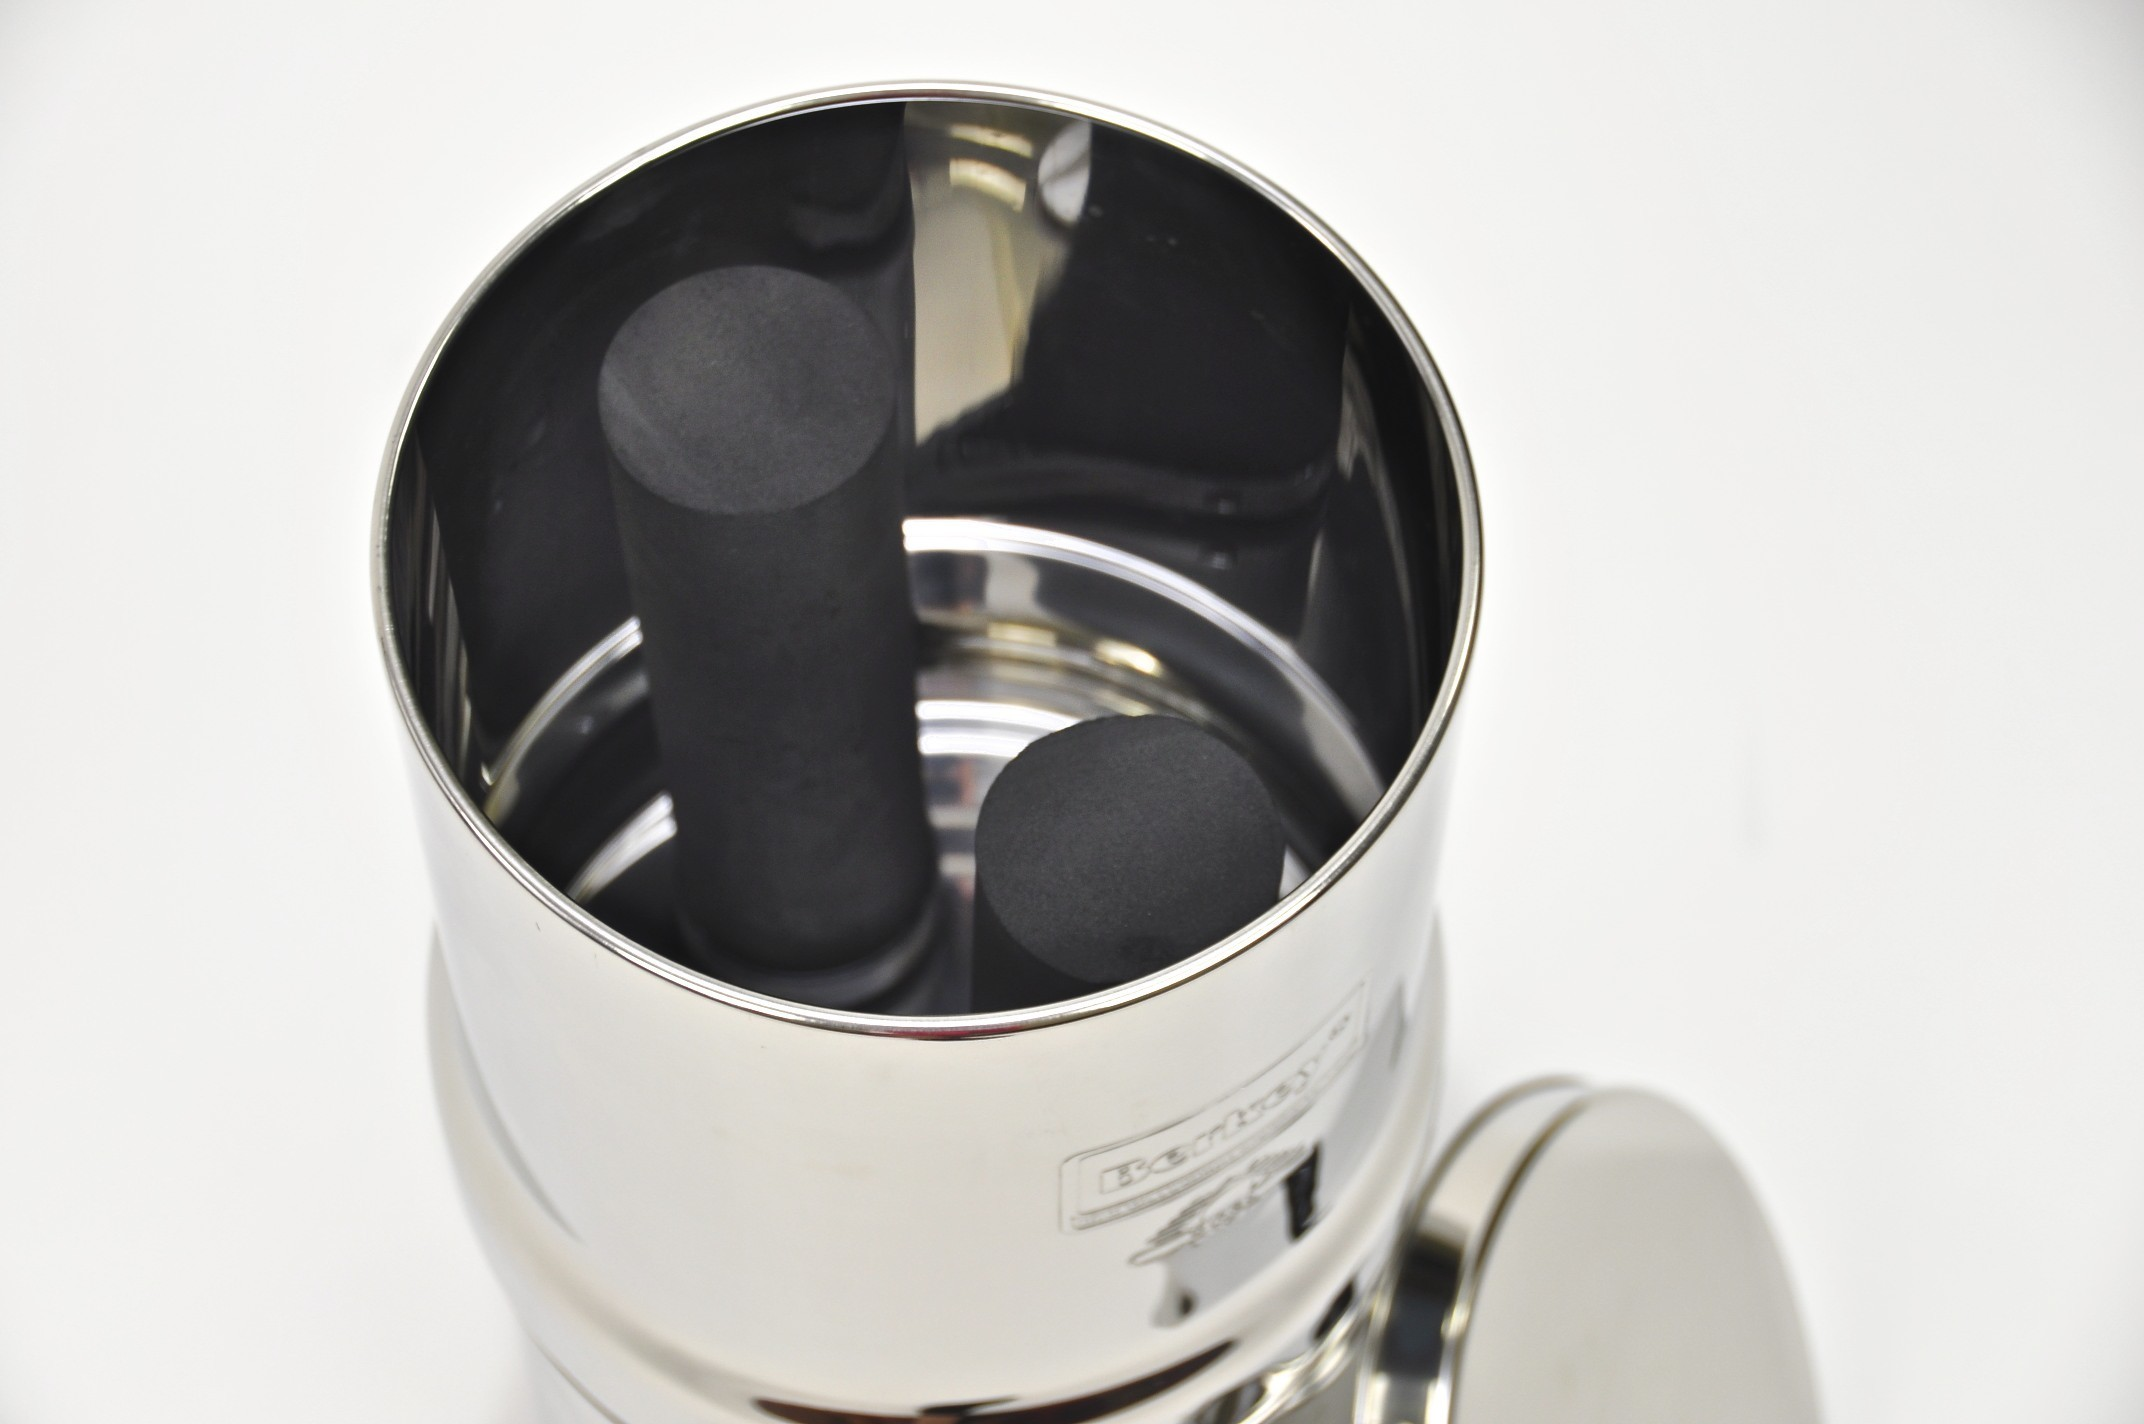 The Travel Berkey Compact Water Filtration System